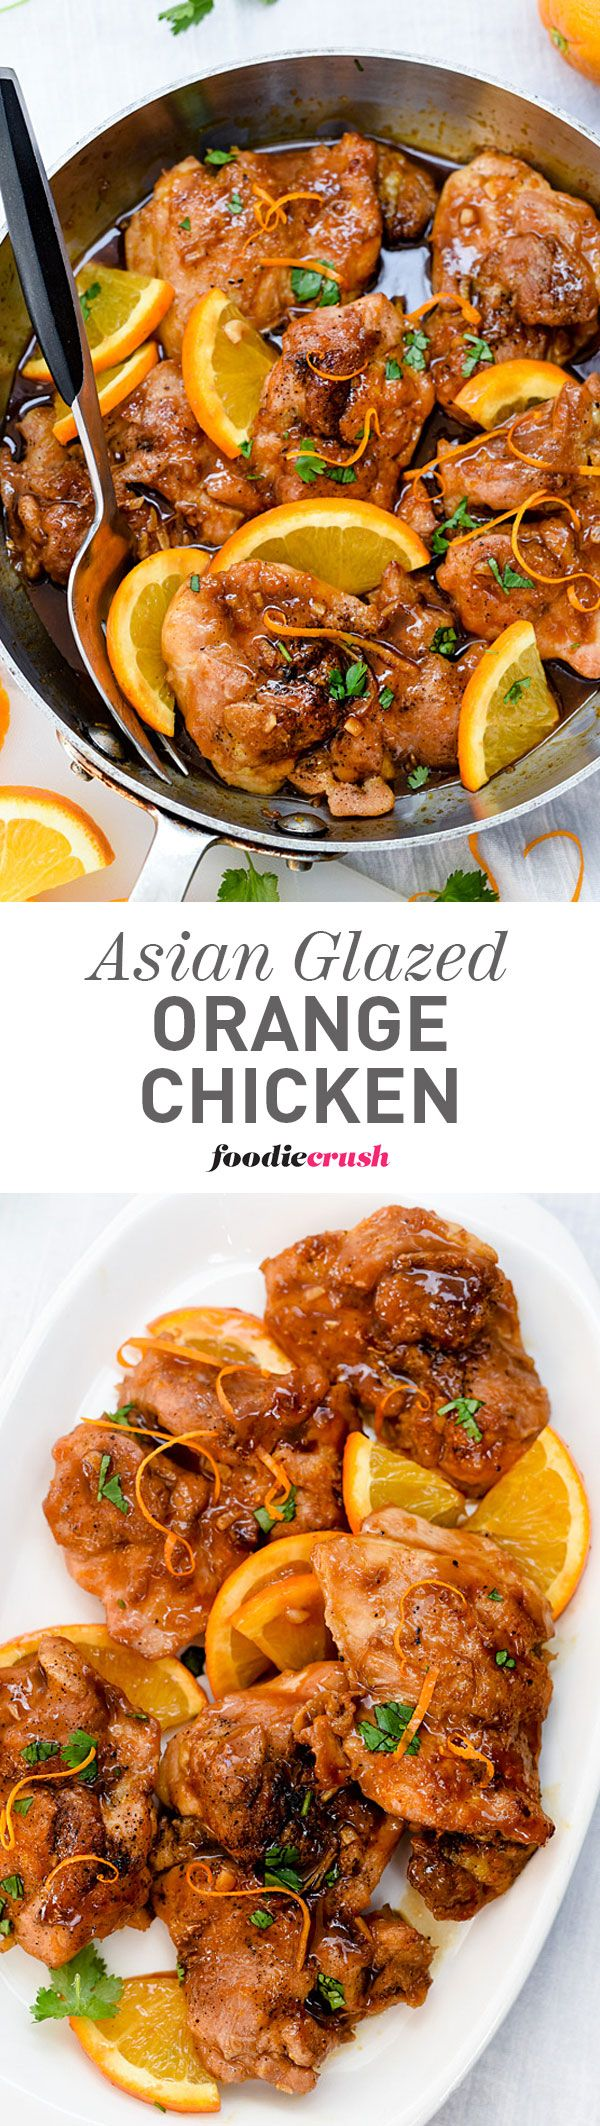 The ying and yang of this sweet and spicy orange sauce with ginger and garlic dresses up juicy chicken thighs for a fast and easy dinner | foodiecrush.com